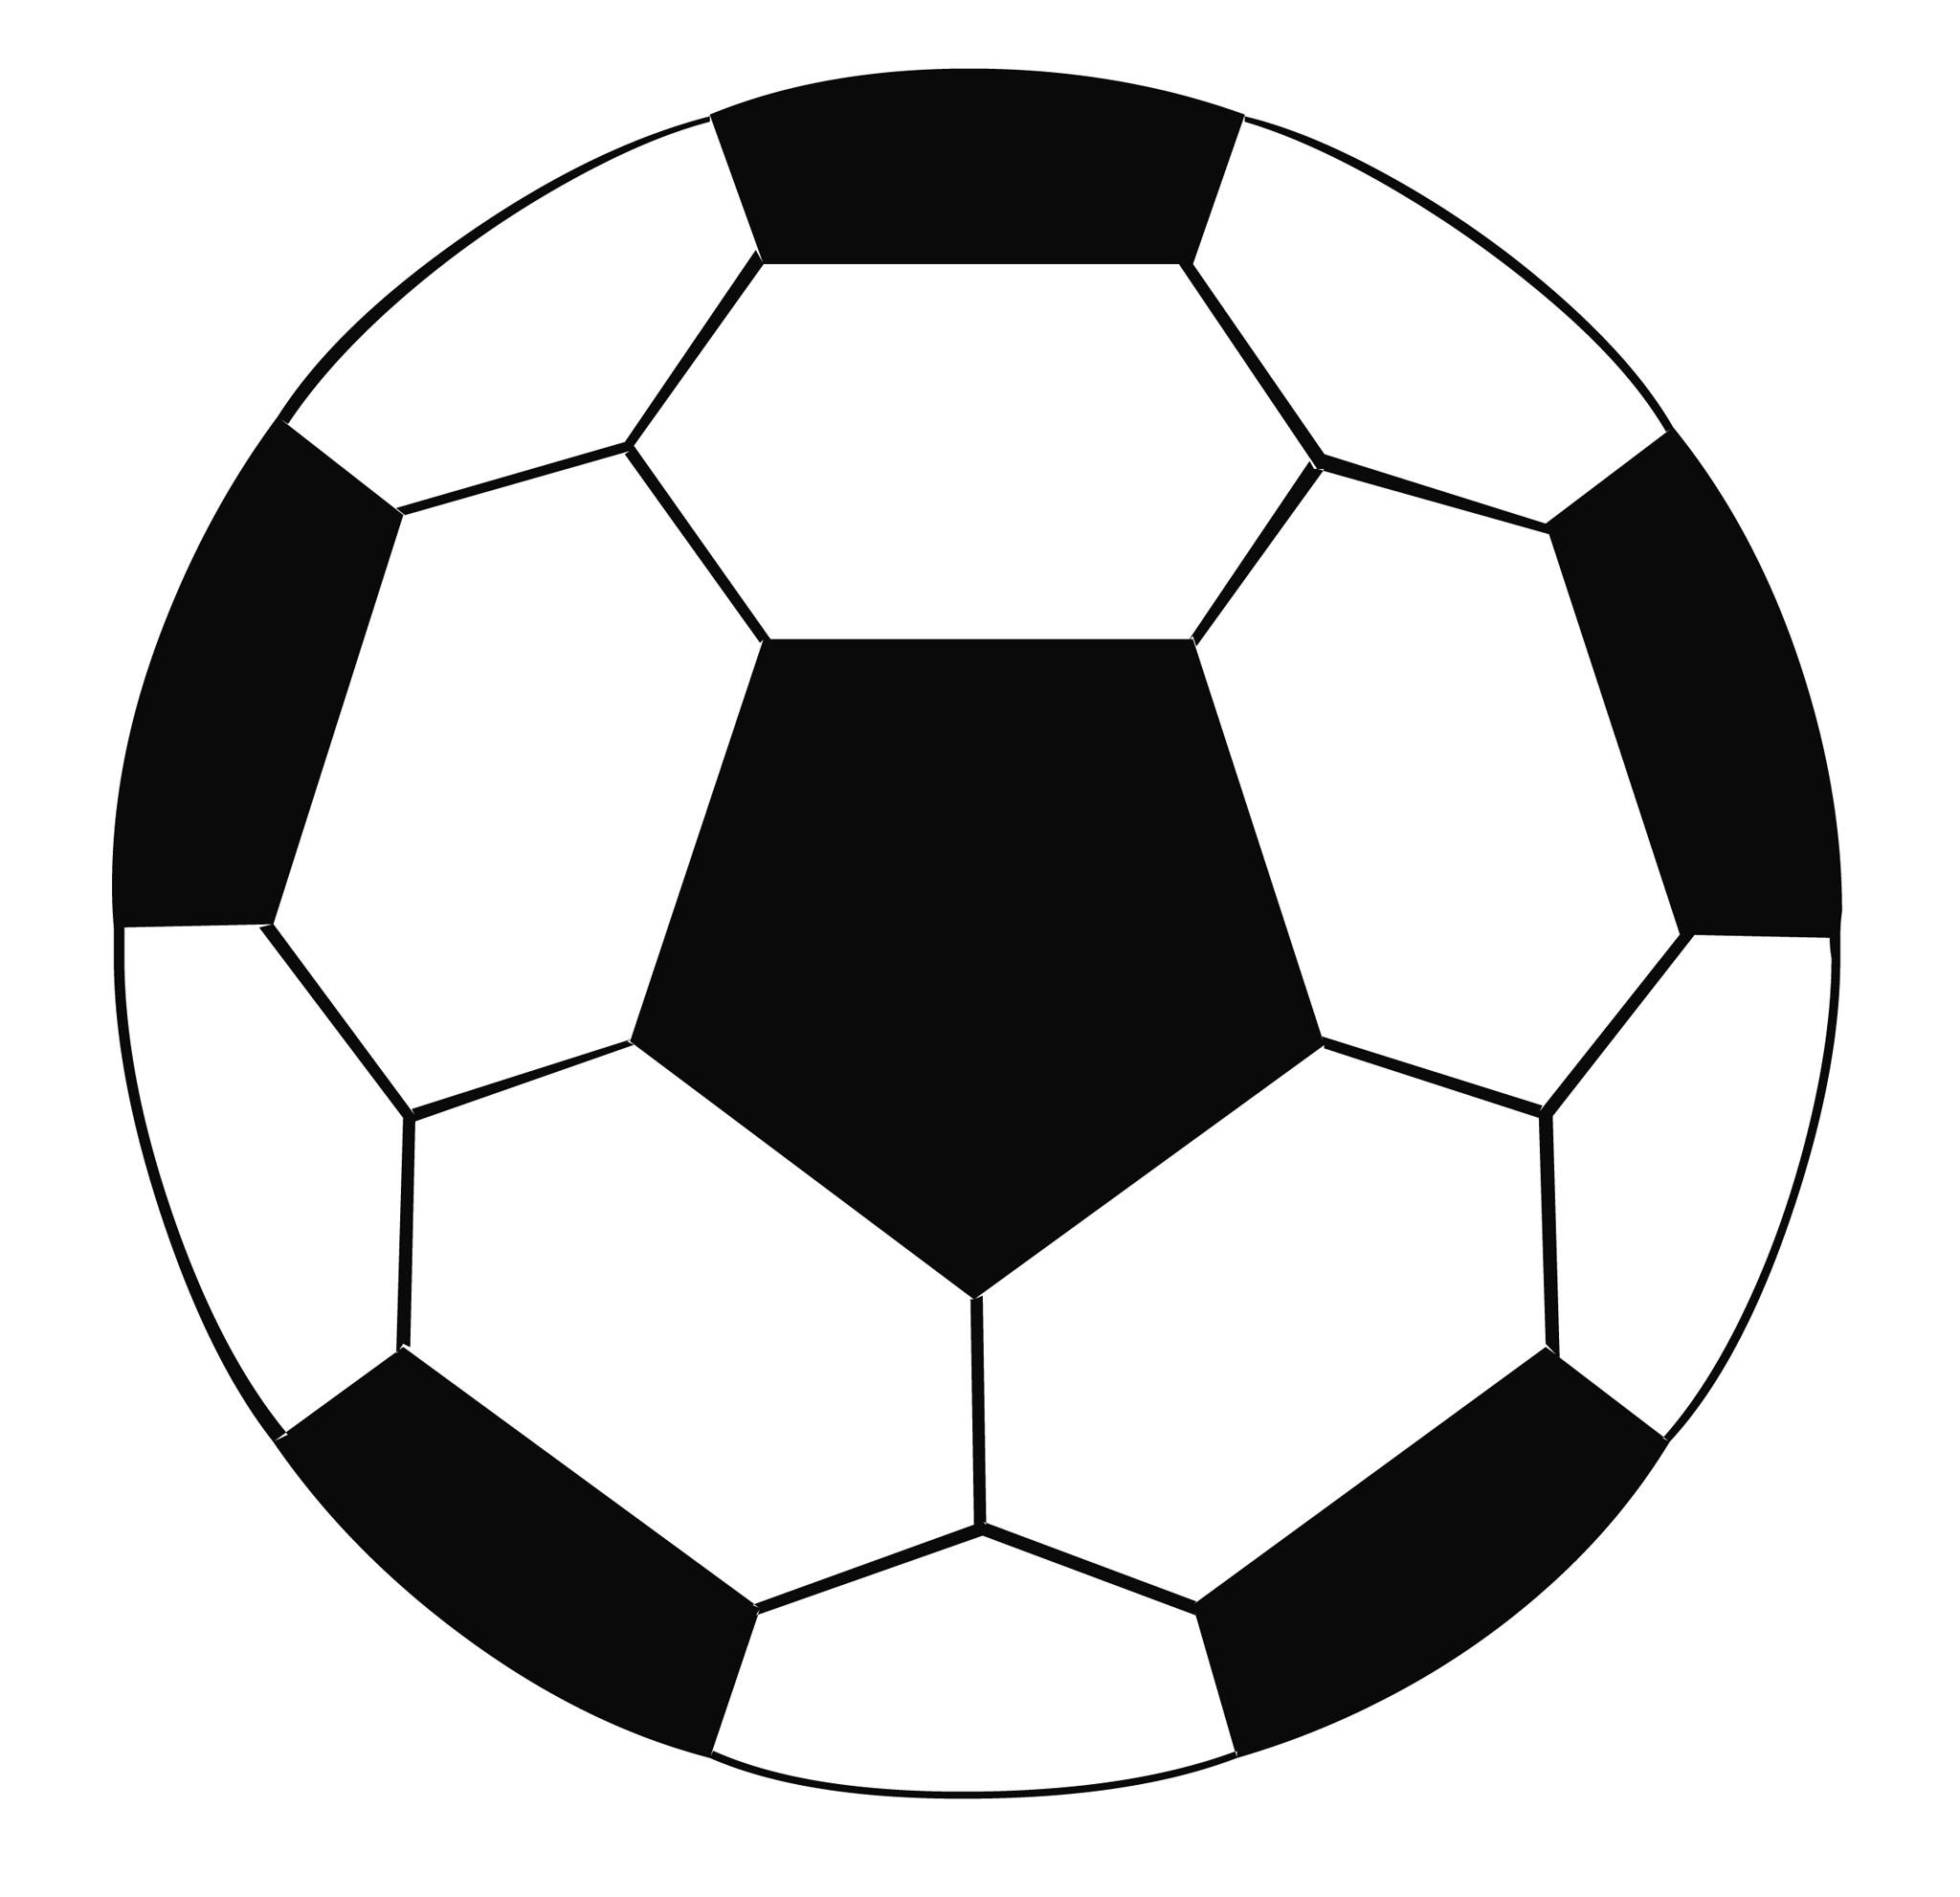 2048x1982 Best 15 Soccer Ball Clip Art Free Large Images Cdr